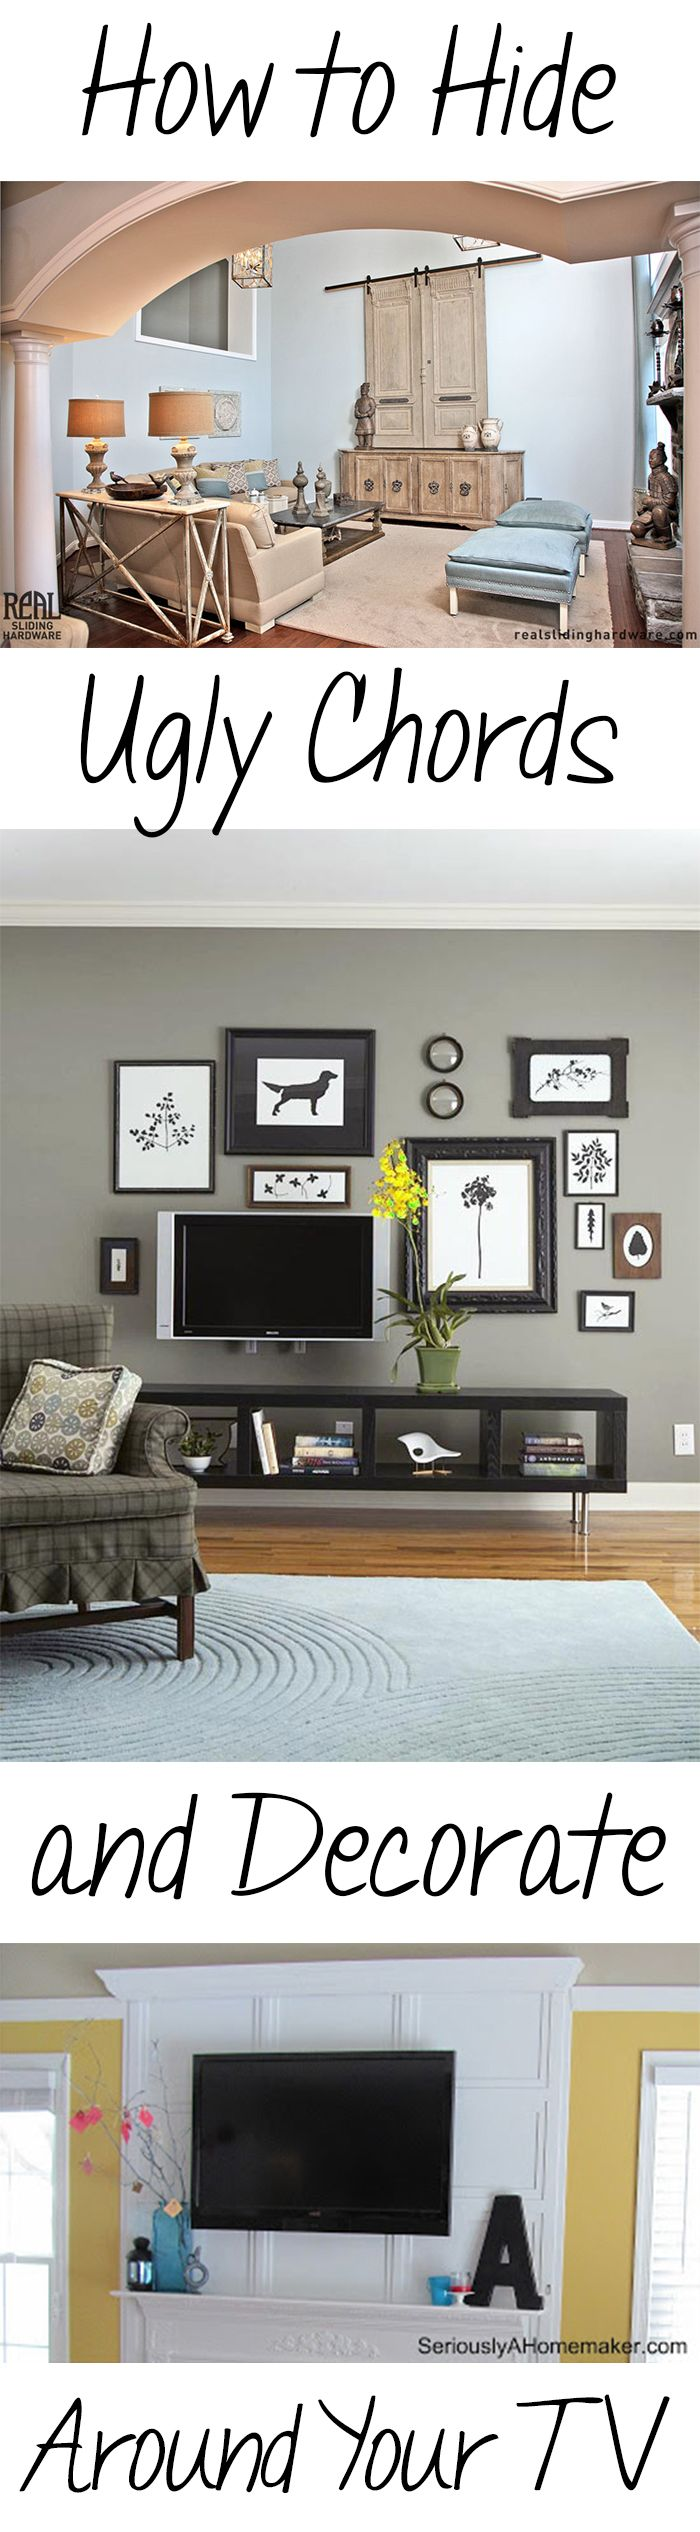 How to Hide Ugly Chords and Decorate Around Your TV